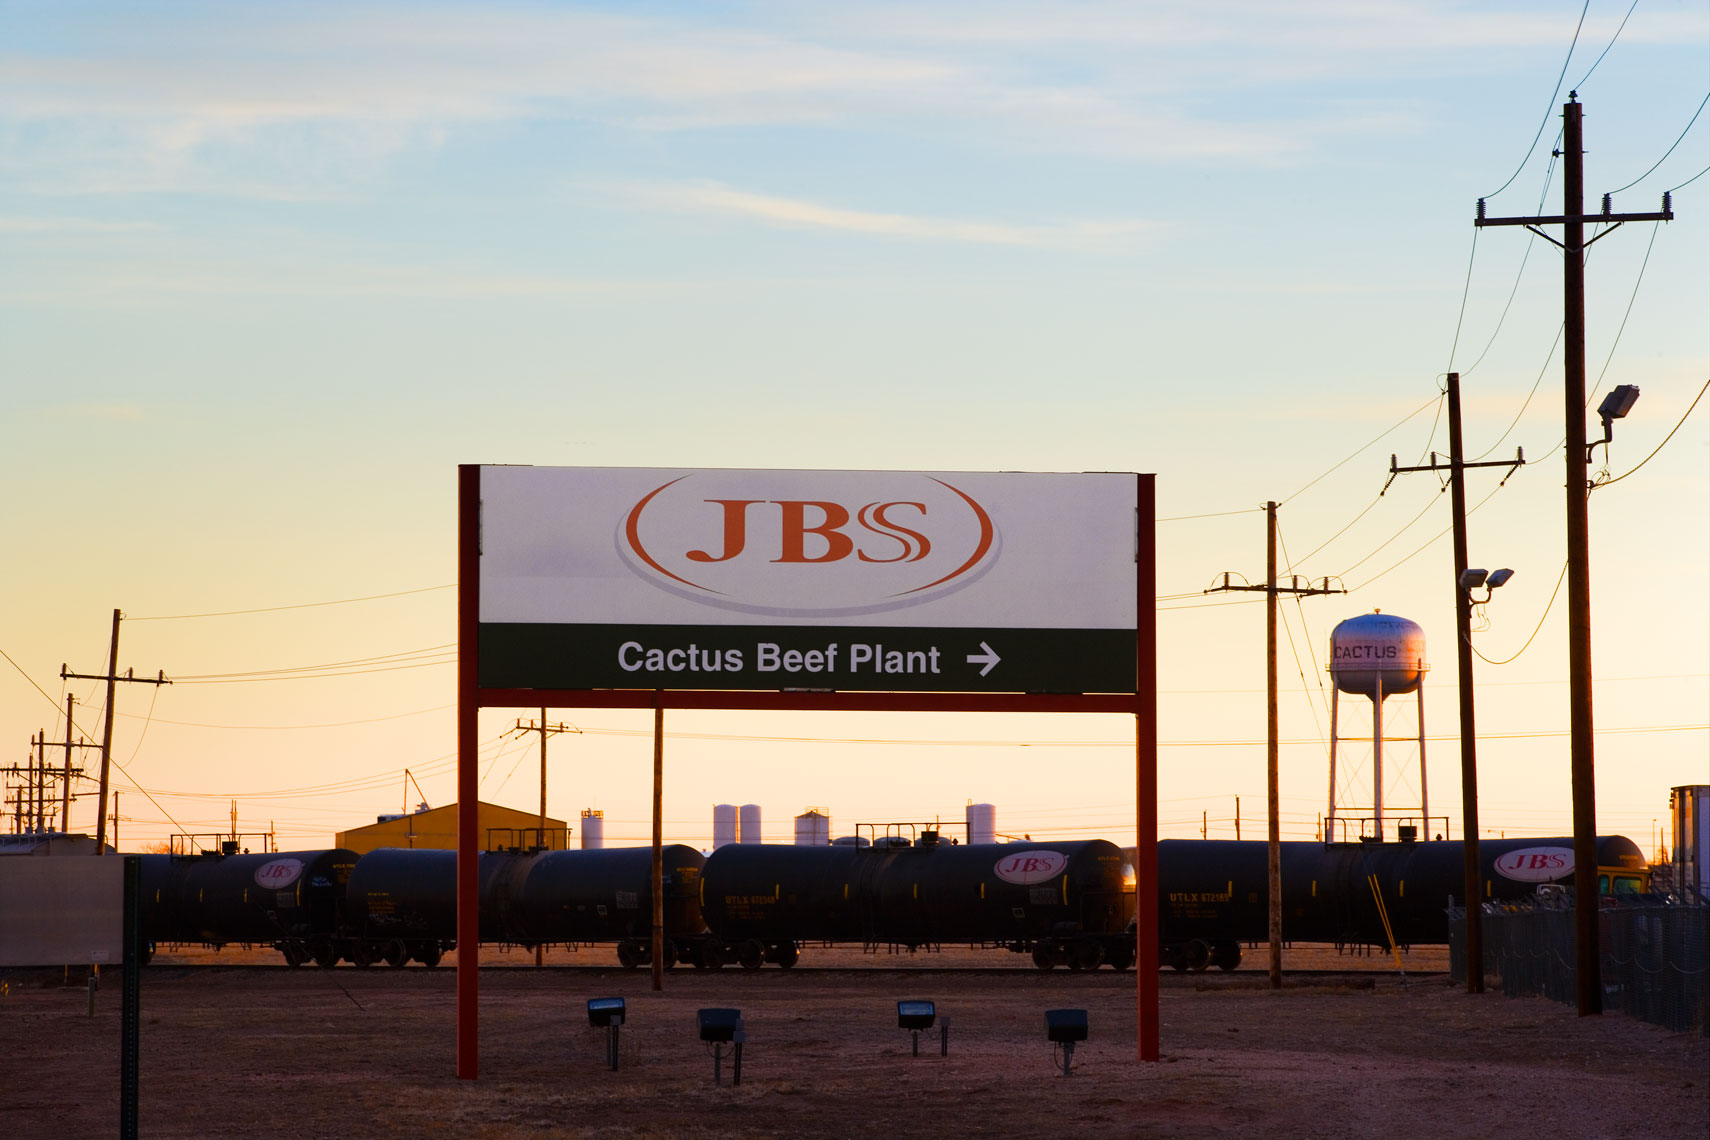 Signage and railroad at beef processing plant in Cactus Texas